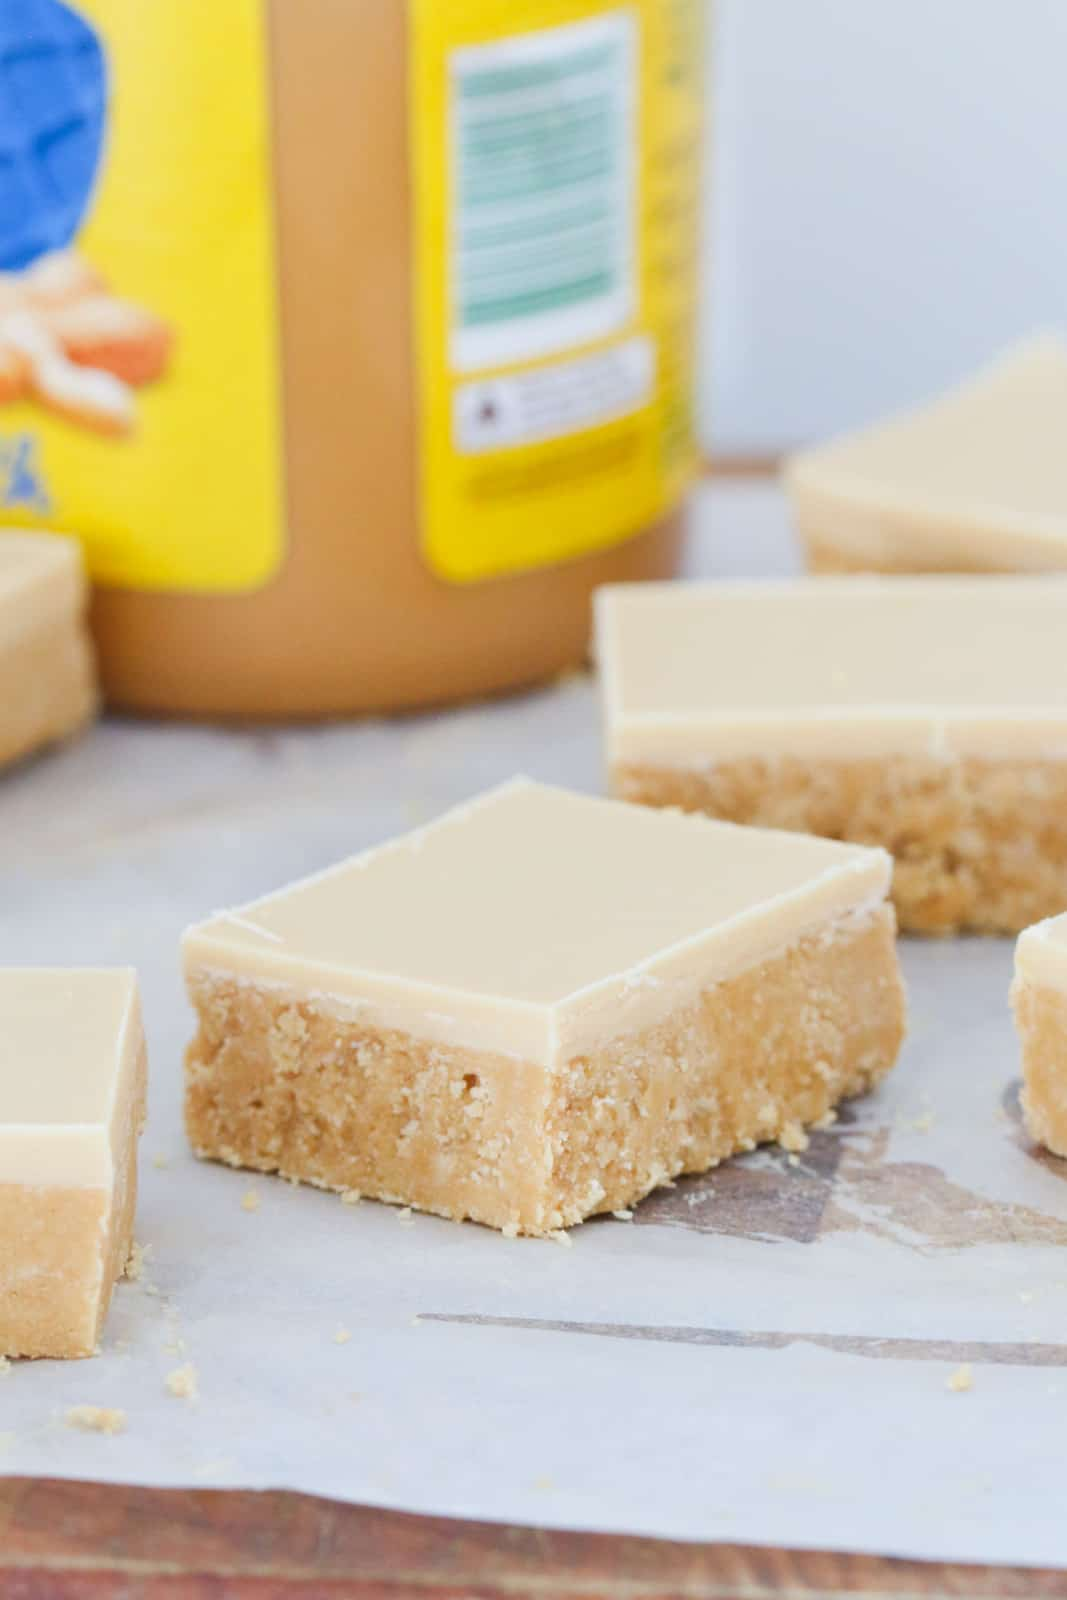 Squares of peanut butter slice topped with white chocolate and peanut butter topping.